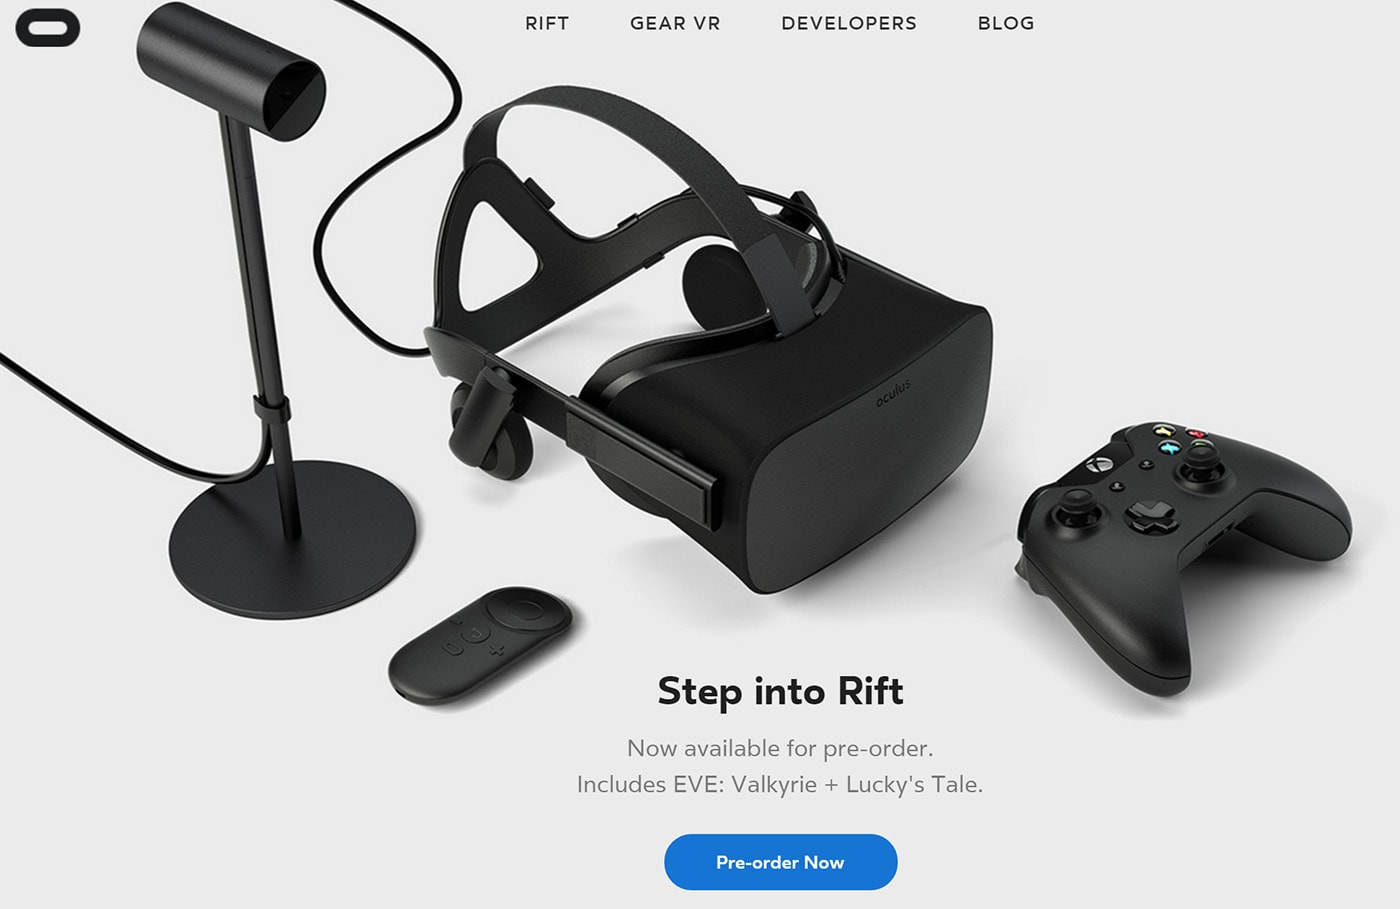 40bdefddb9d5 The Oculus Rift costs  599 and ships in March